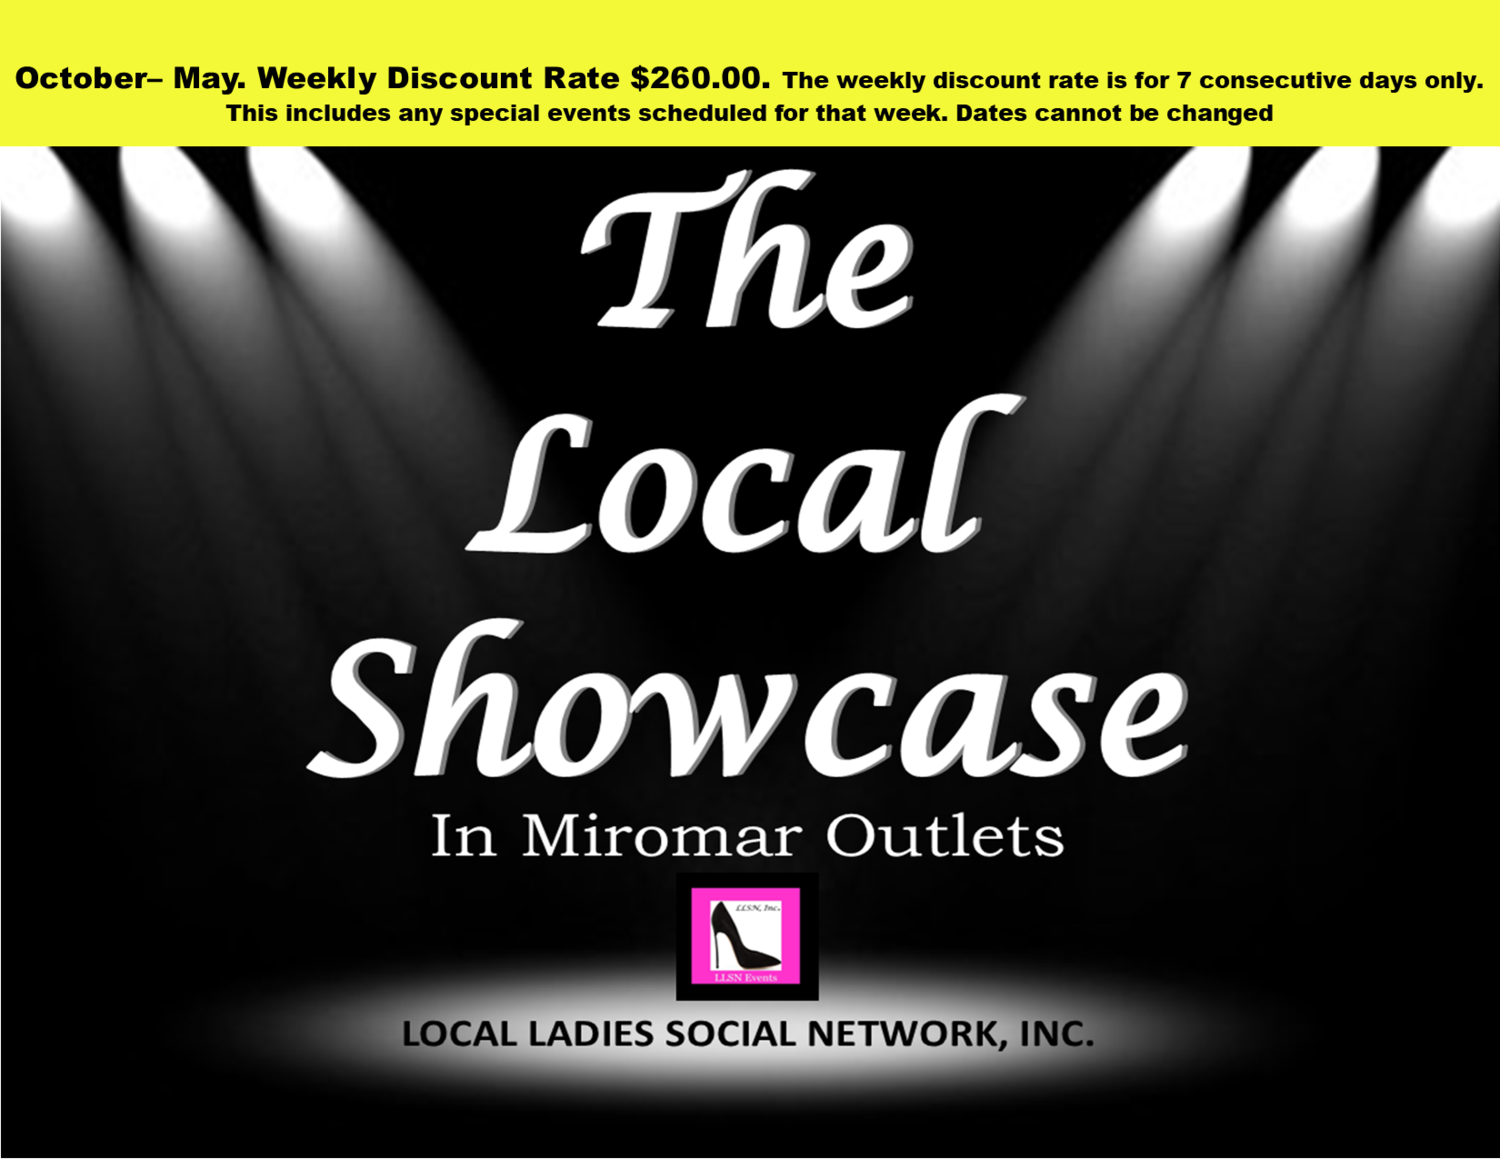 Weekly Discount Only Approved Vendors may use this payment method for The Local Showcase in Miromar Outlets. Interested vendors please email: LLSN@comcast.net for approval.